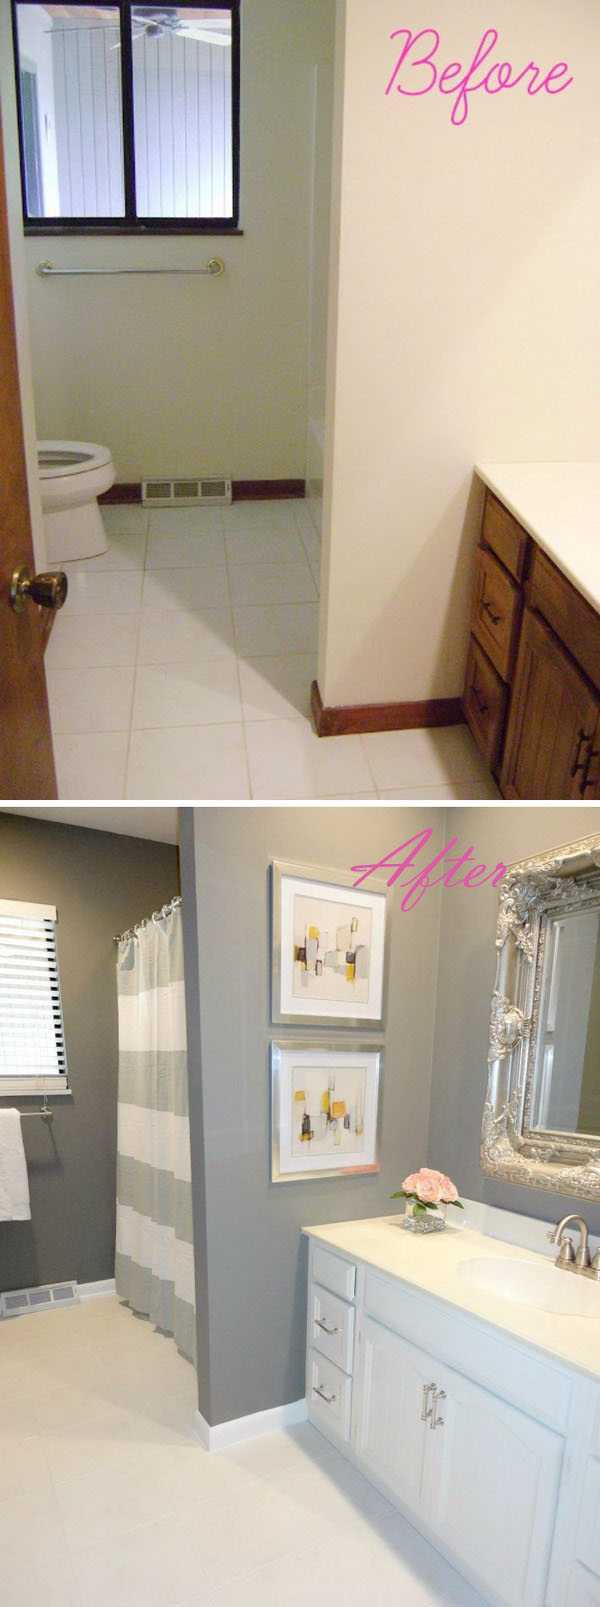 Before and after 20 awesome bathroom makeovers hative Bathroom diy remodel